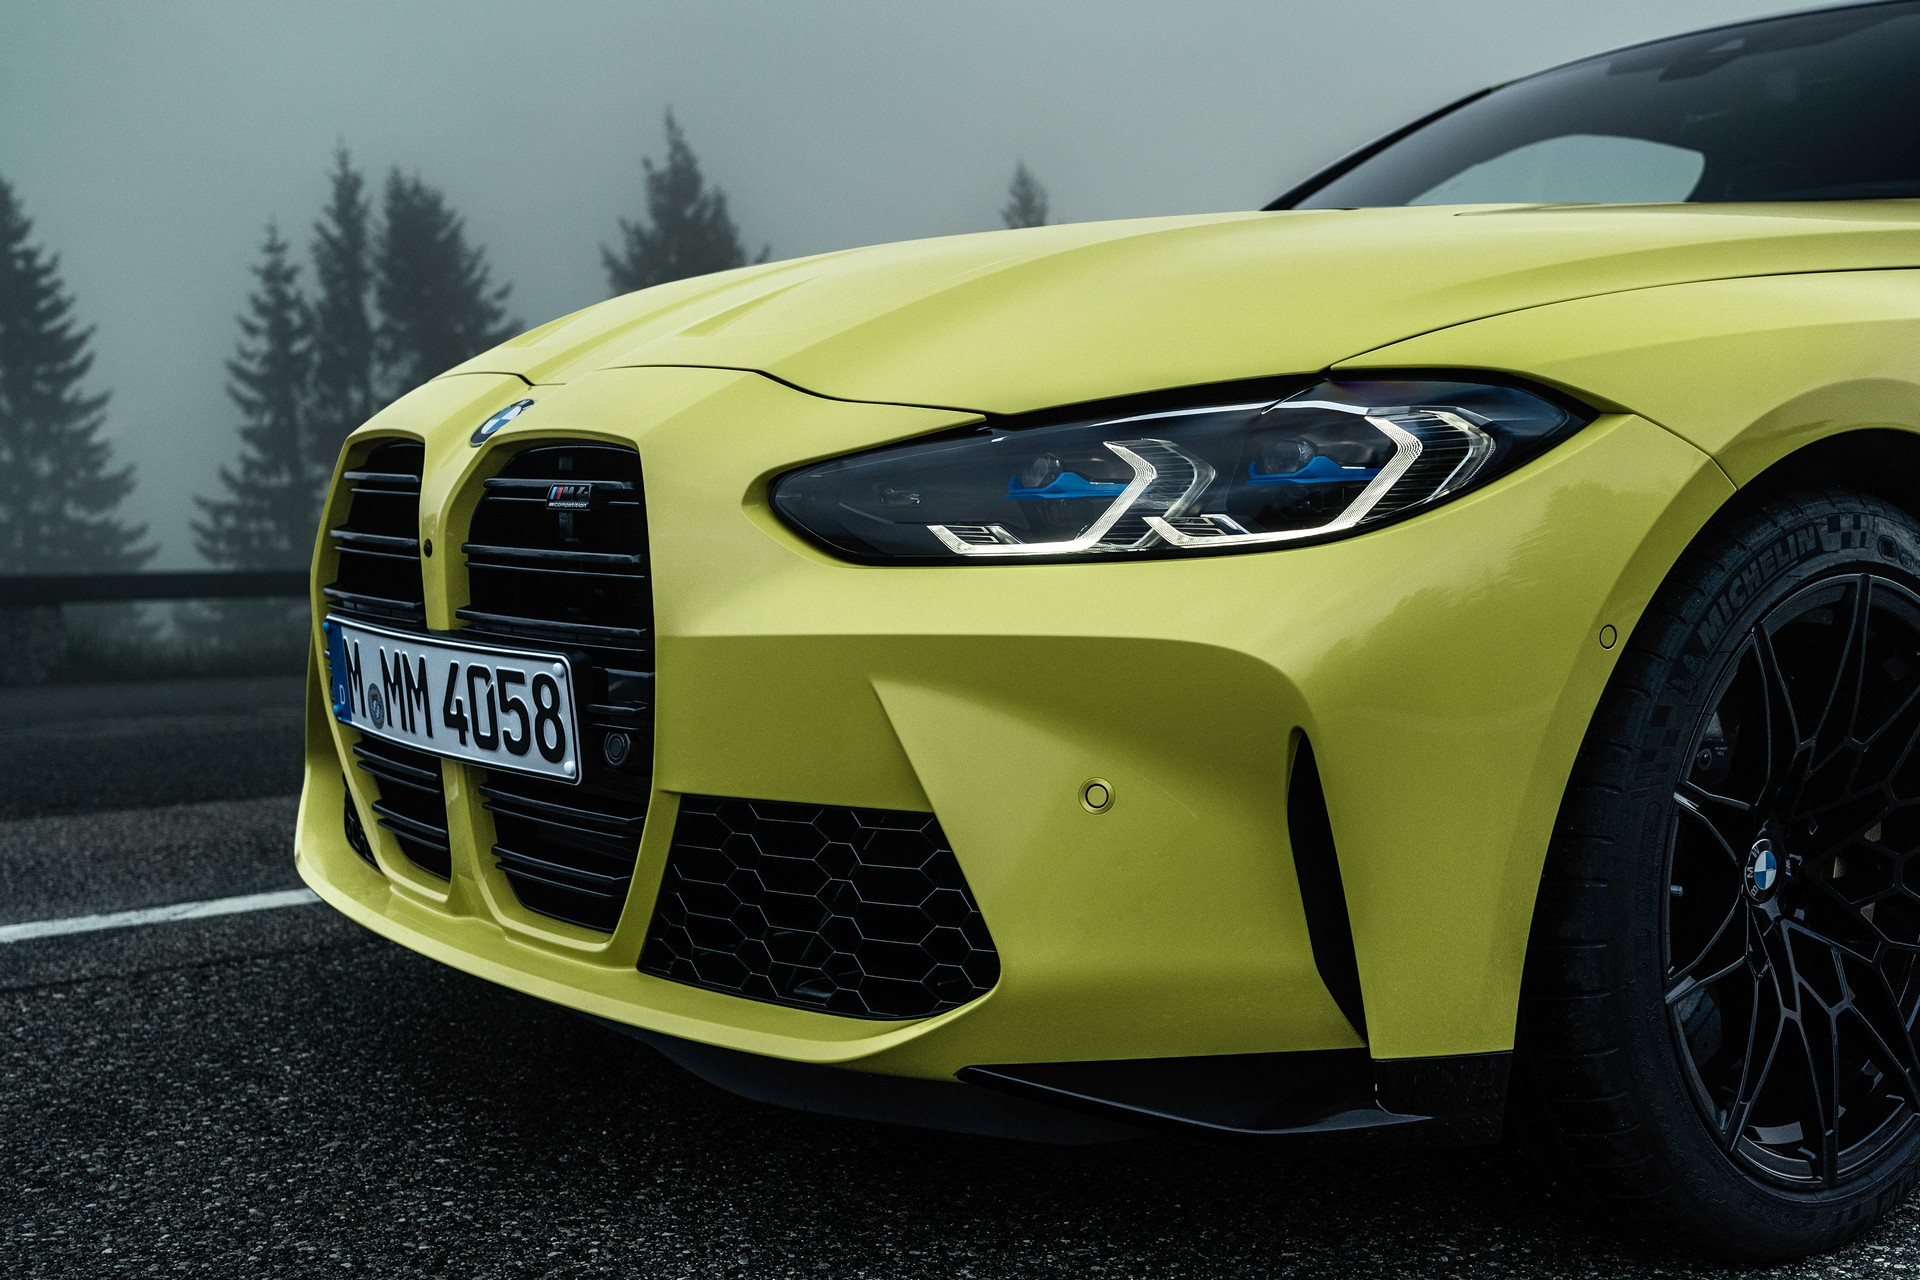 2021-bmw-m3-and-m4-28.jpg